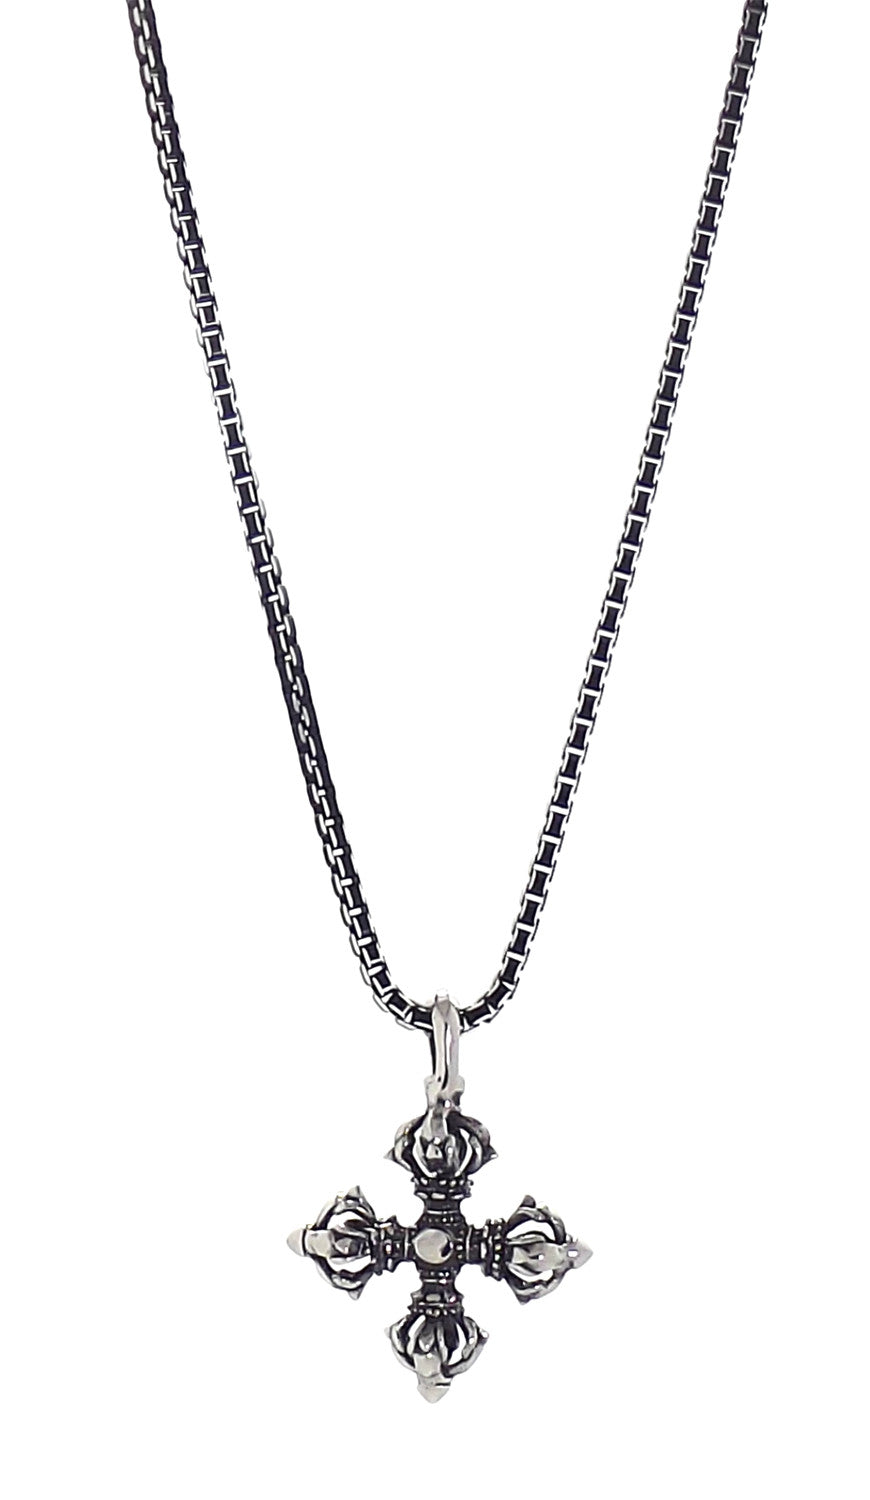 Necklace - Silver Vajra Star Necklace - Tossari  - 3